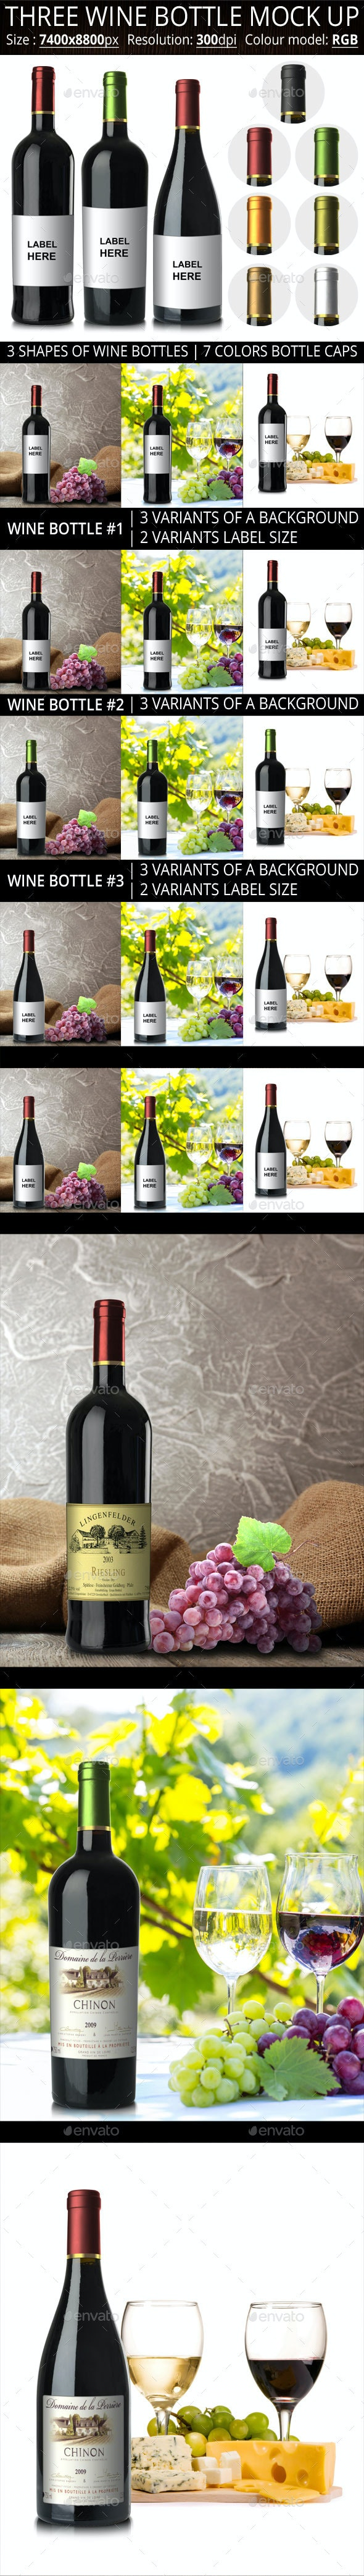 Three Wine Bottle Mock Up - Food and Drink Packaging